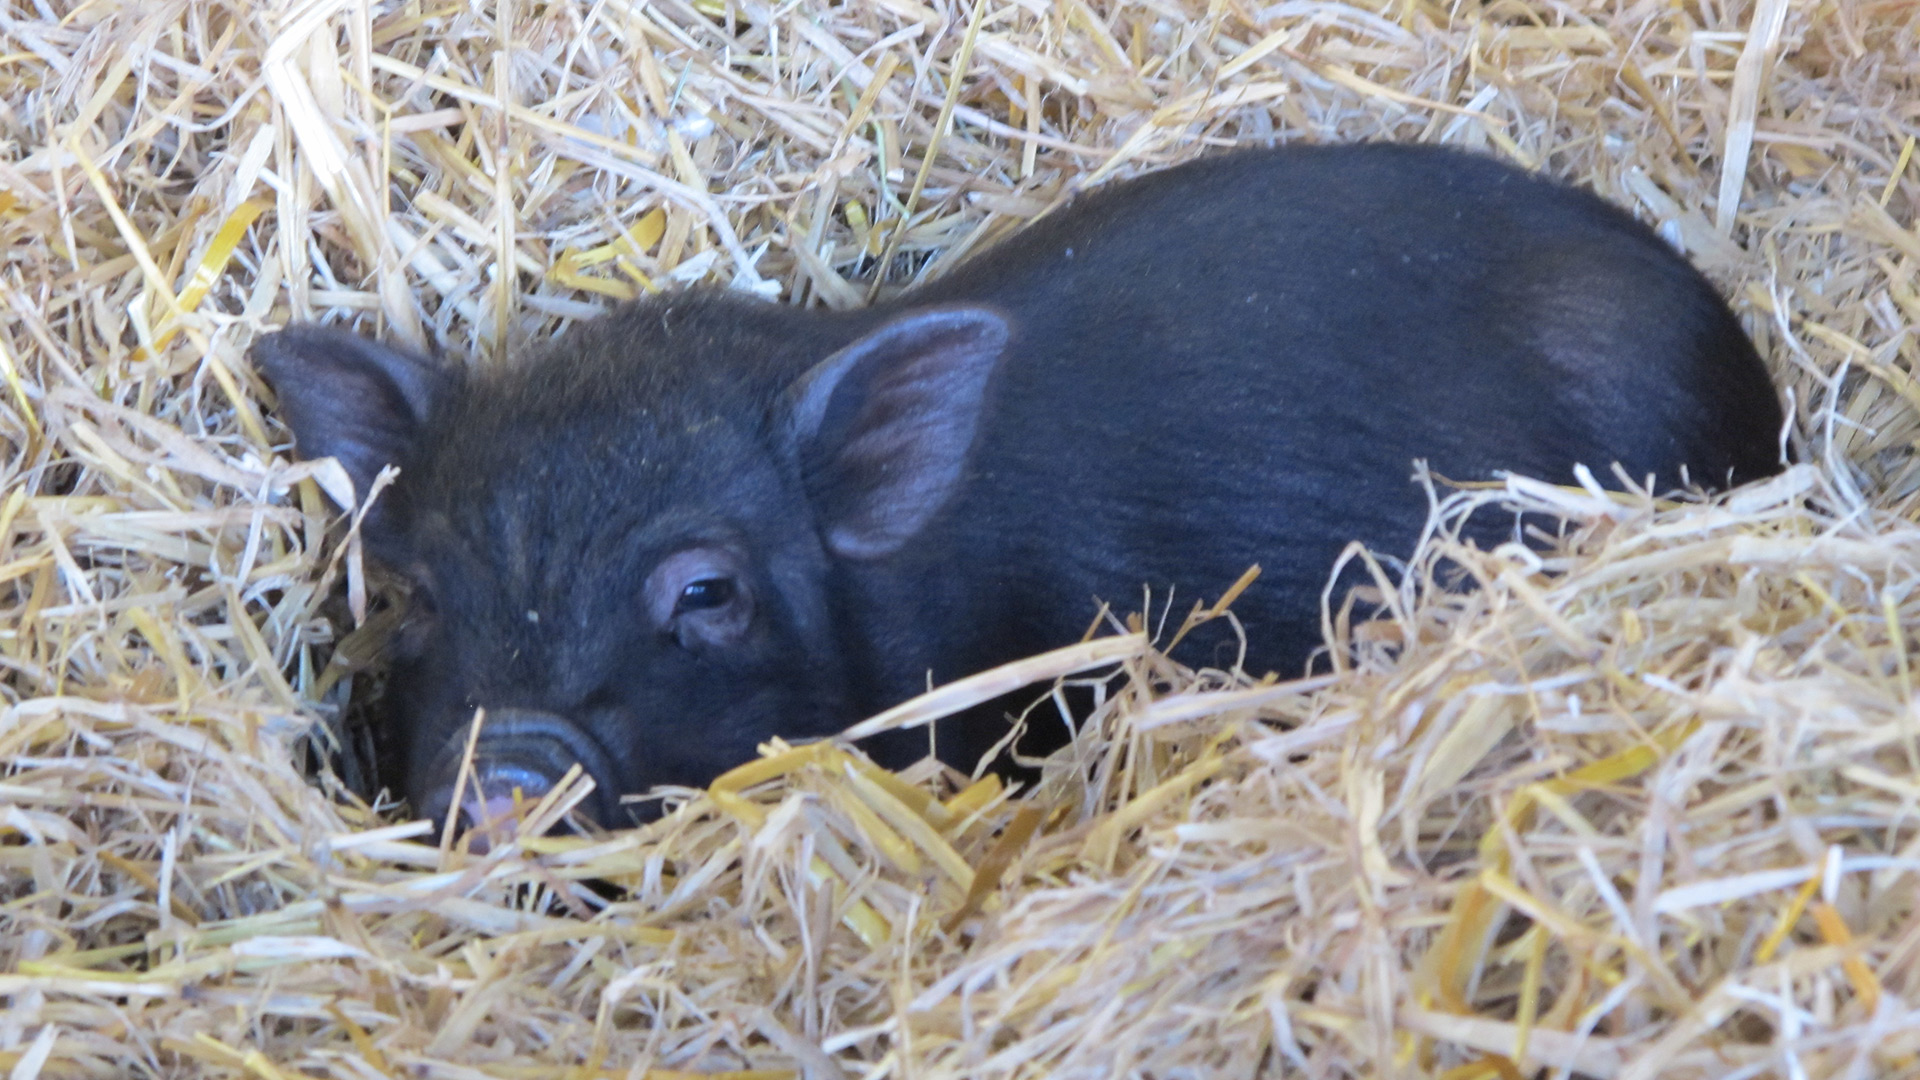 Micro pigs | Sheknows.com